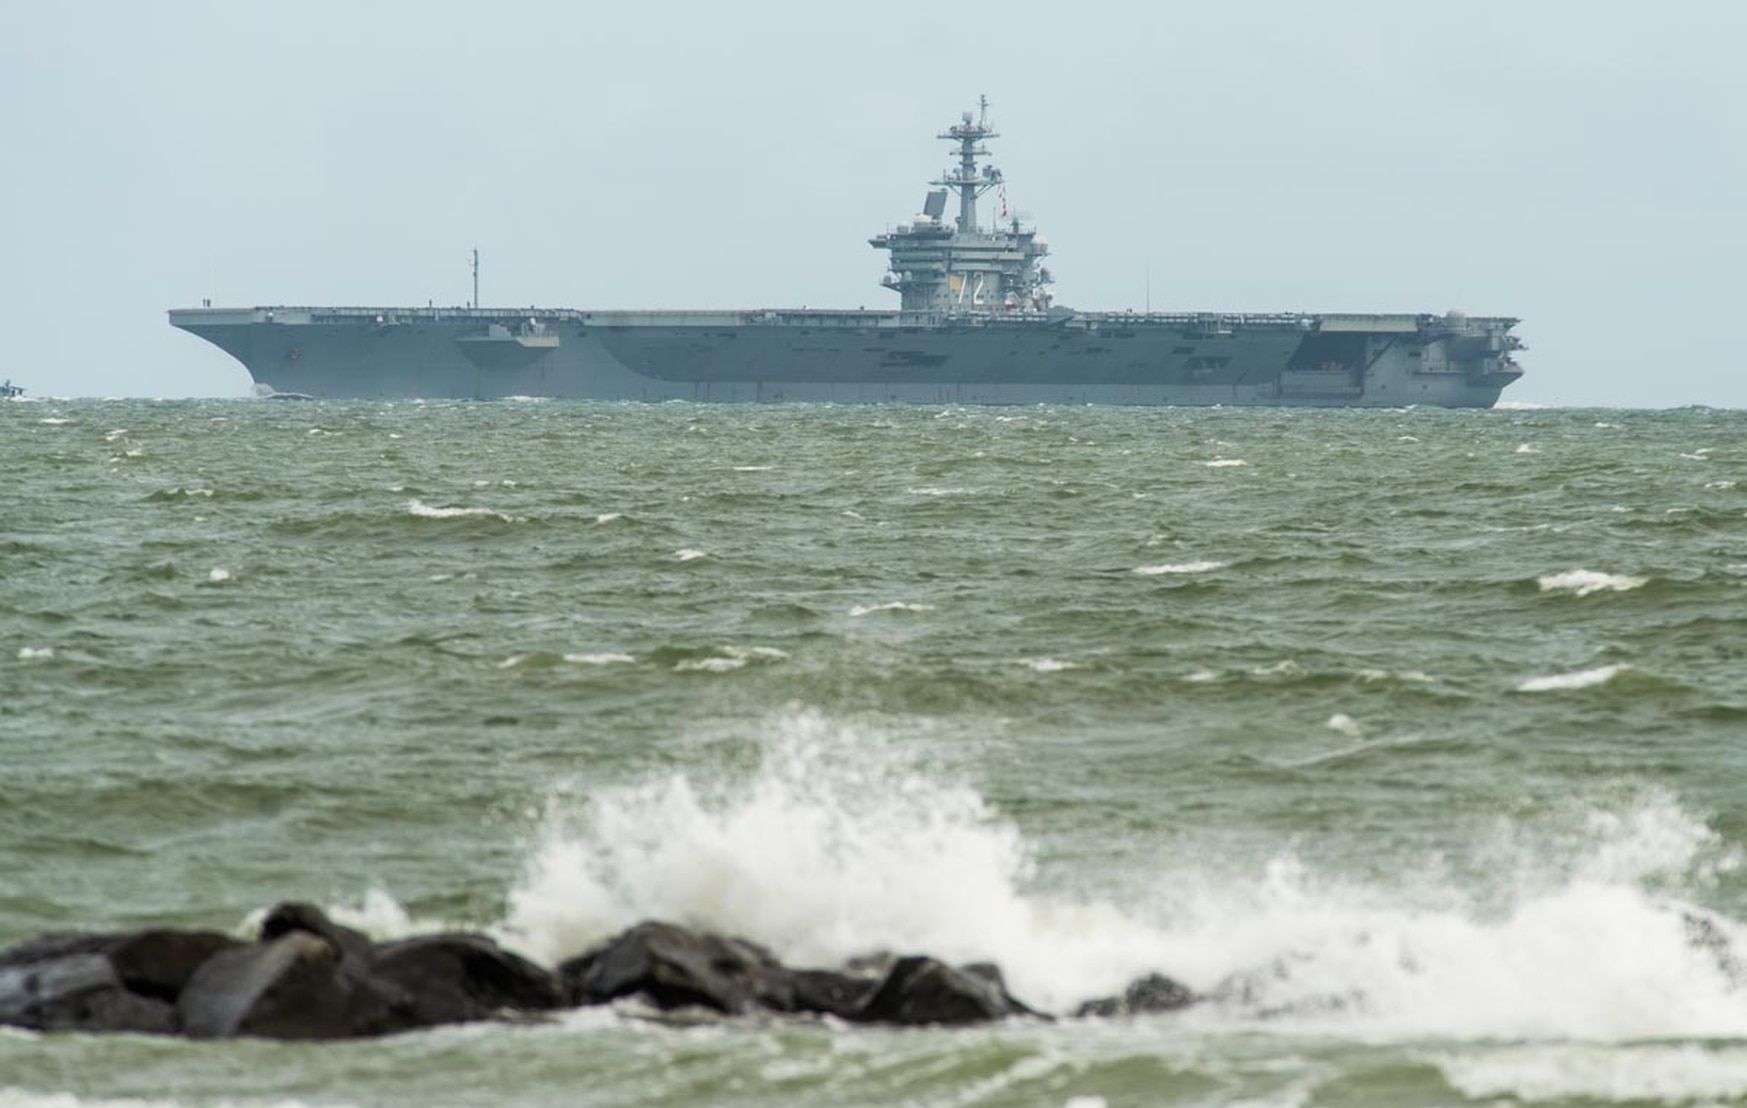 Five days after being the last U.S. Navy ship chased out of Naval Station, Norfolk by Hurricane Florence, the aircraft carrier Abraham Lincoln returns home on Sept. 16, 2018. (Staff)